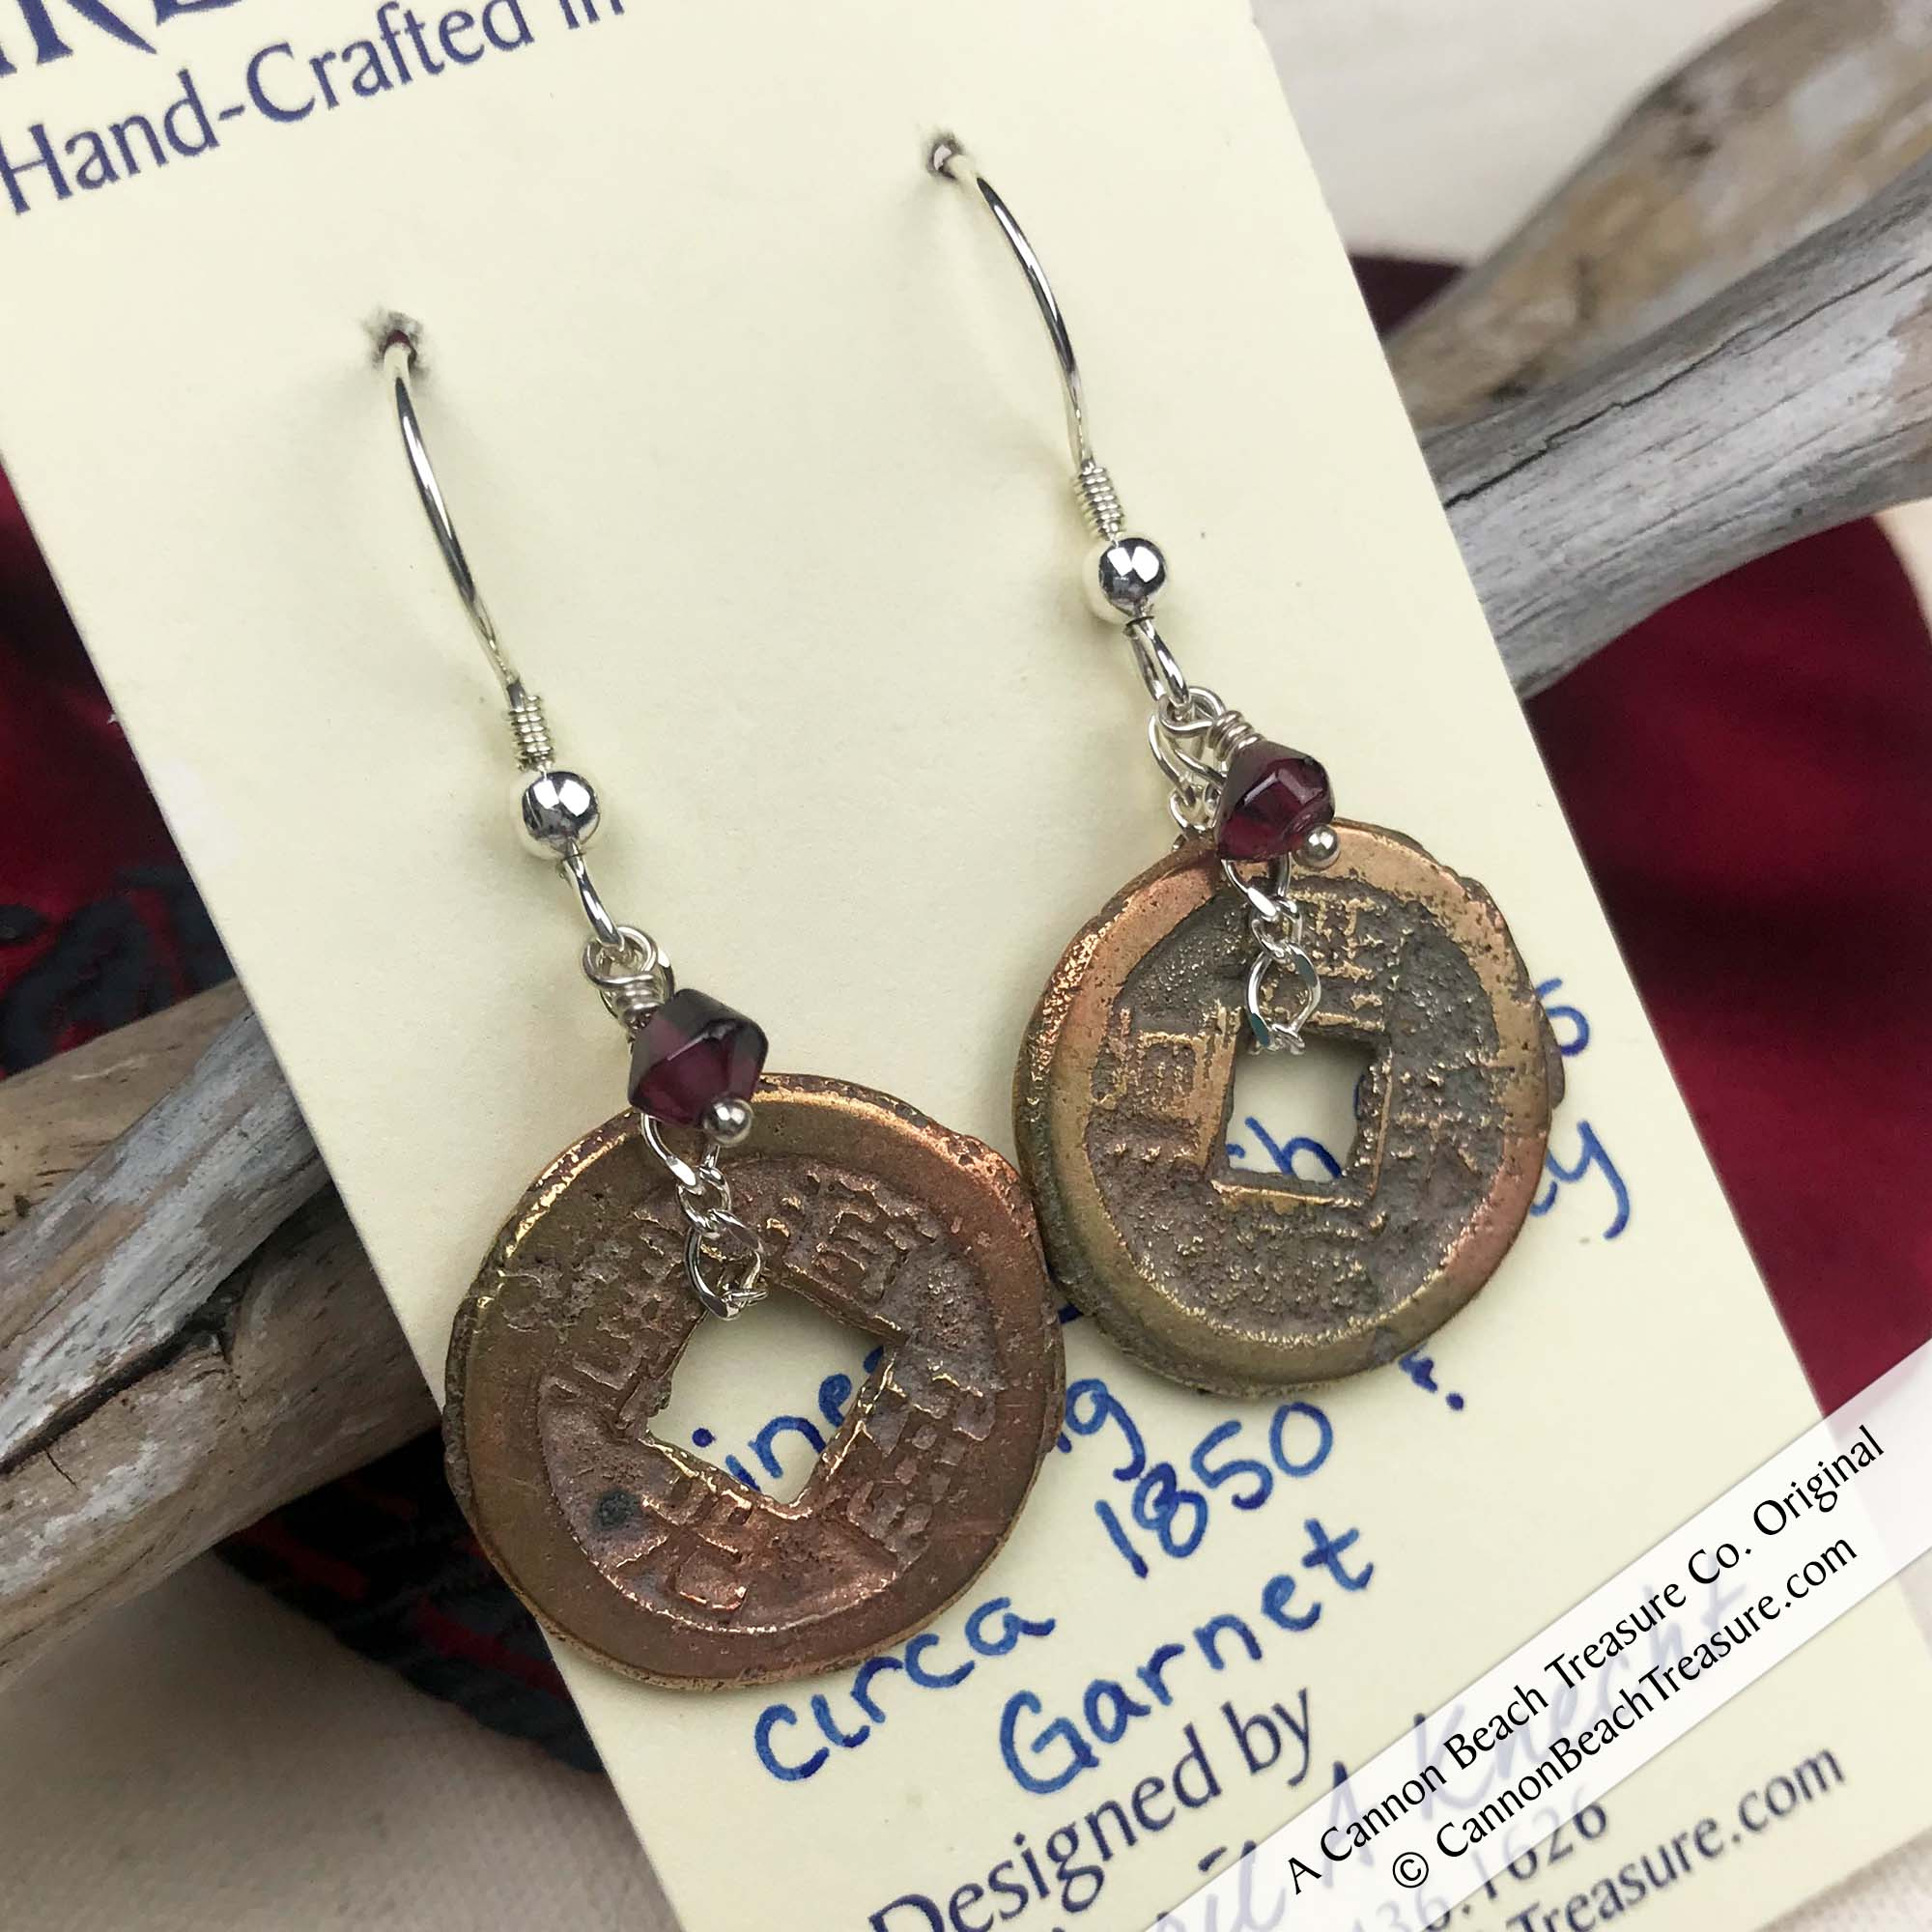 Ch'ing Dynasty 1 Cash Treasure Coin Earrings with Genuine Garnets | Artifact #8719